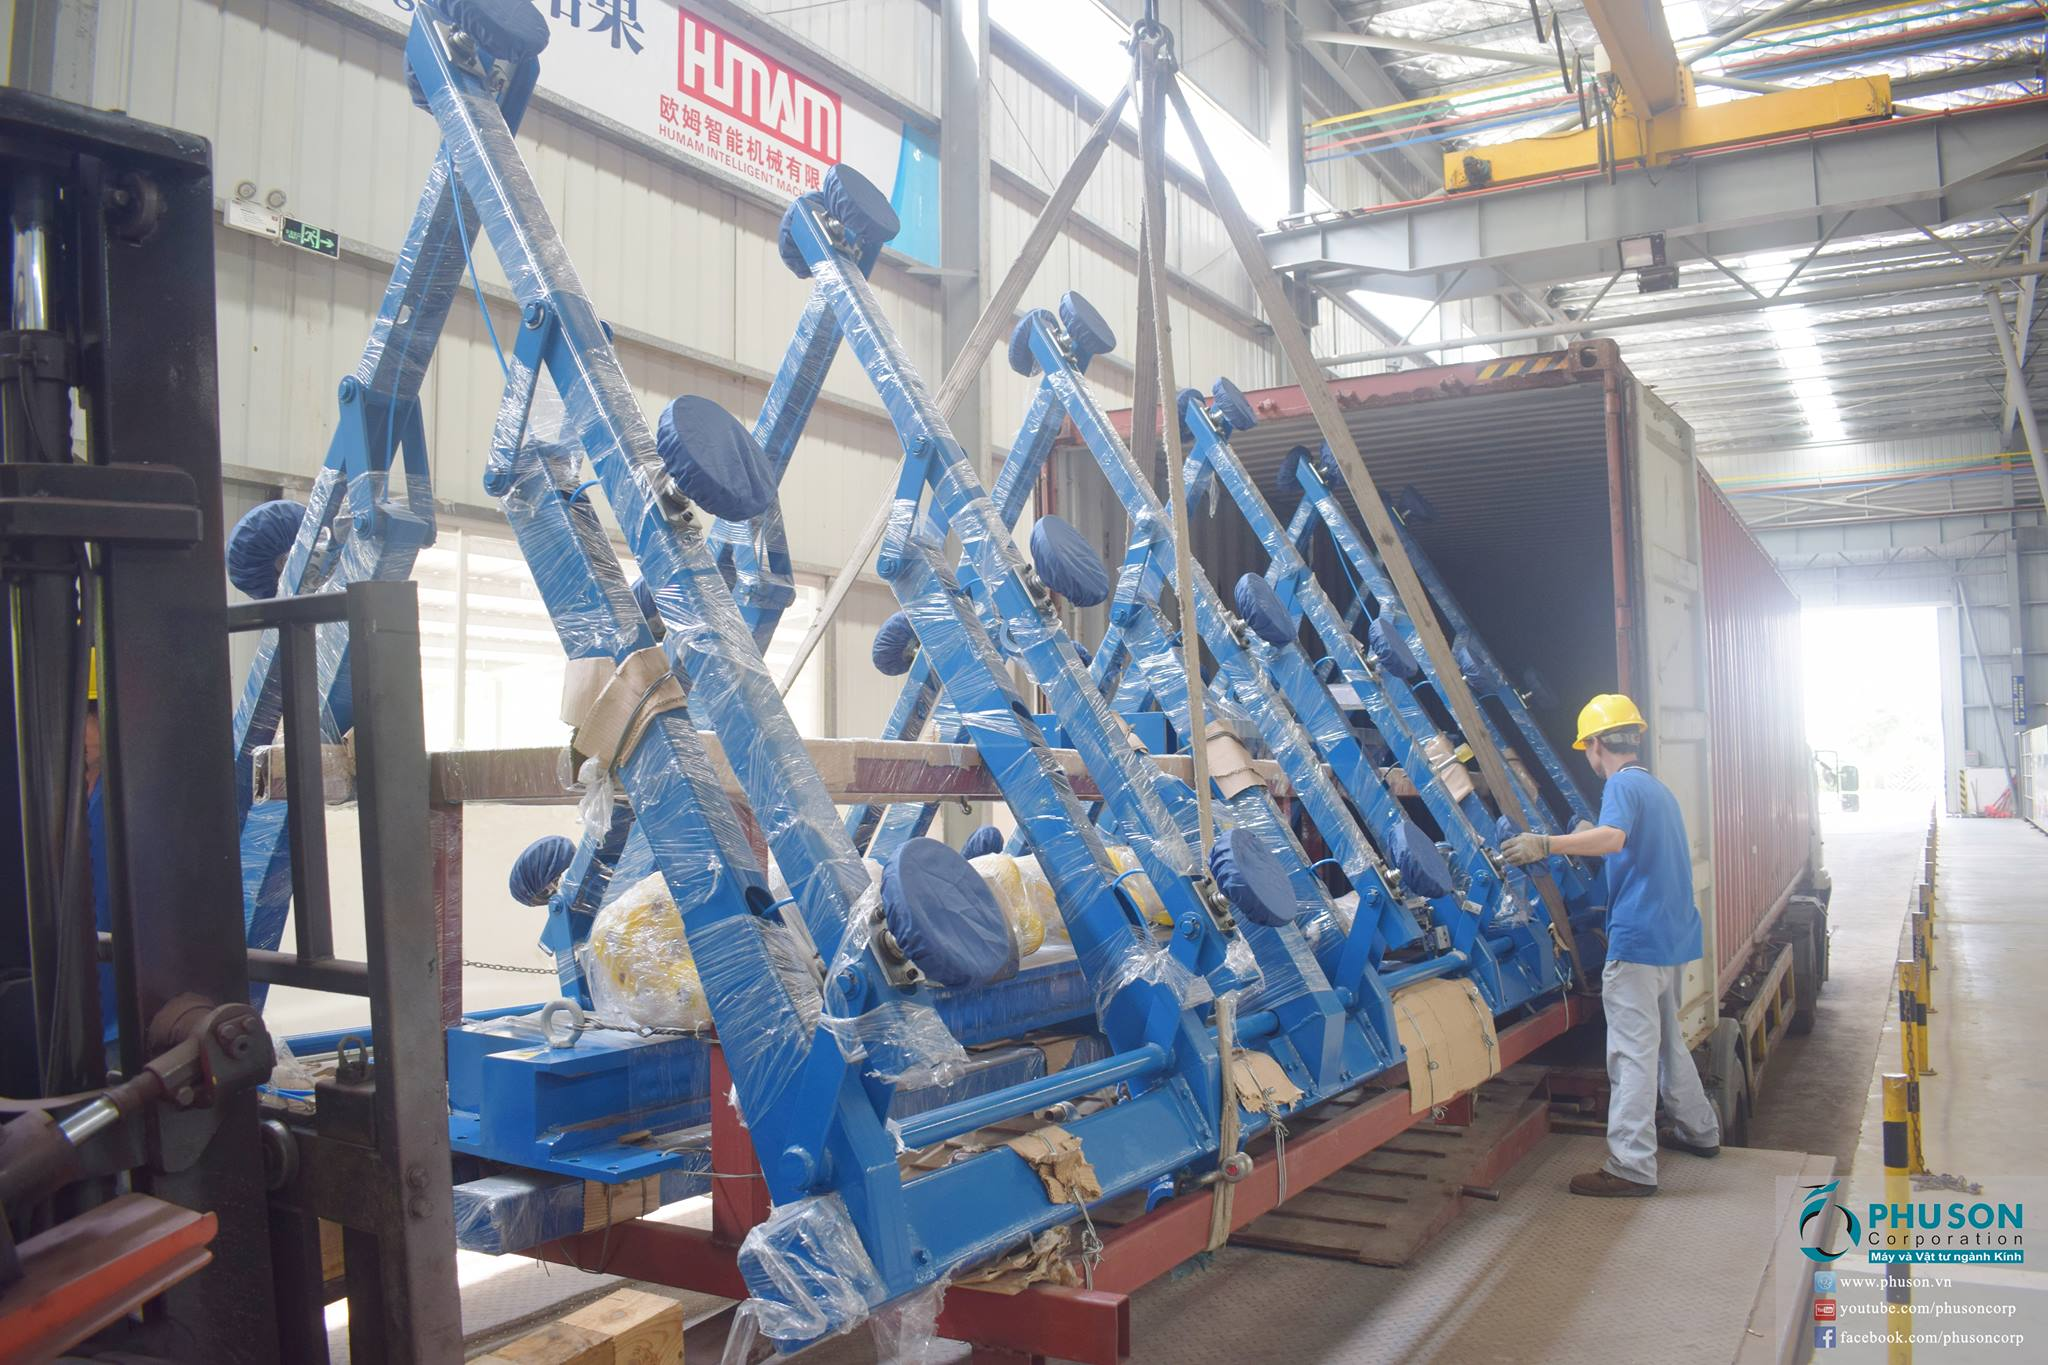 Stuffing container of Jumbo- sized Automatic Glass loading machine – 2 sides 4 stations